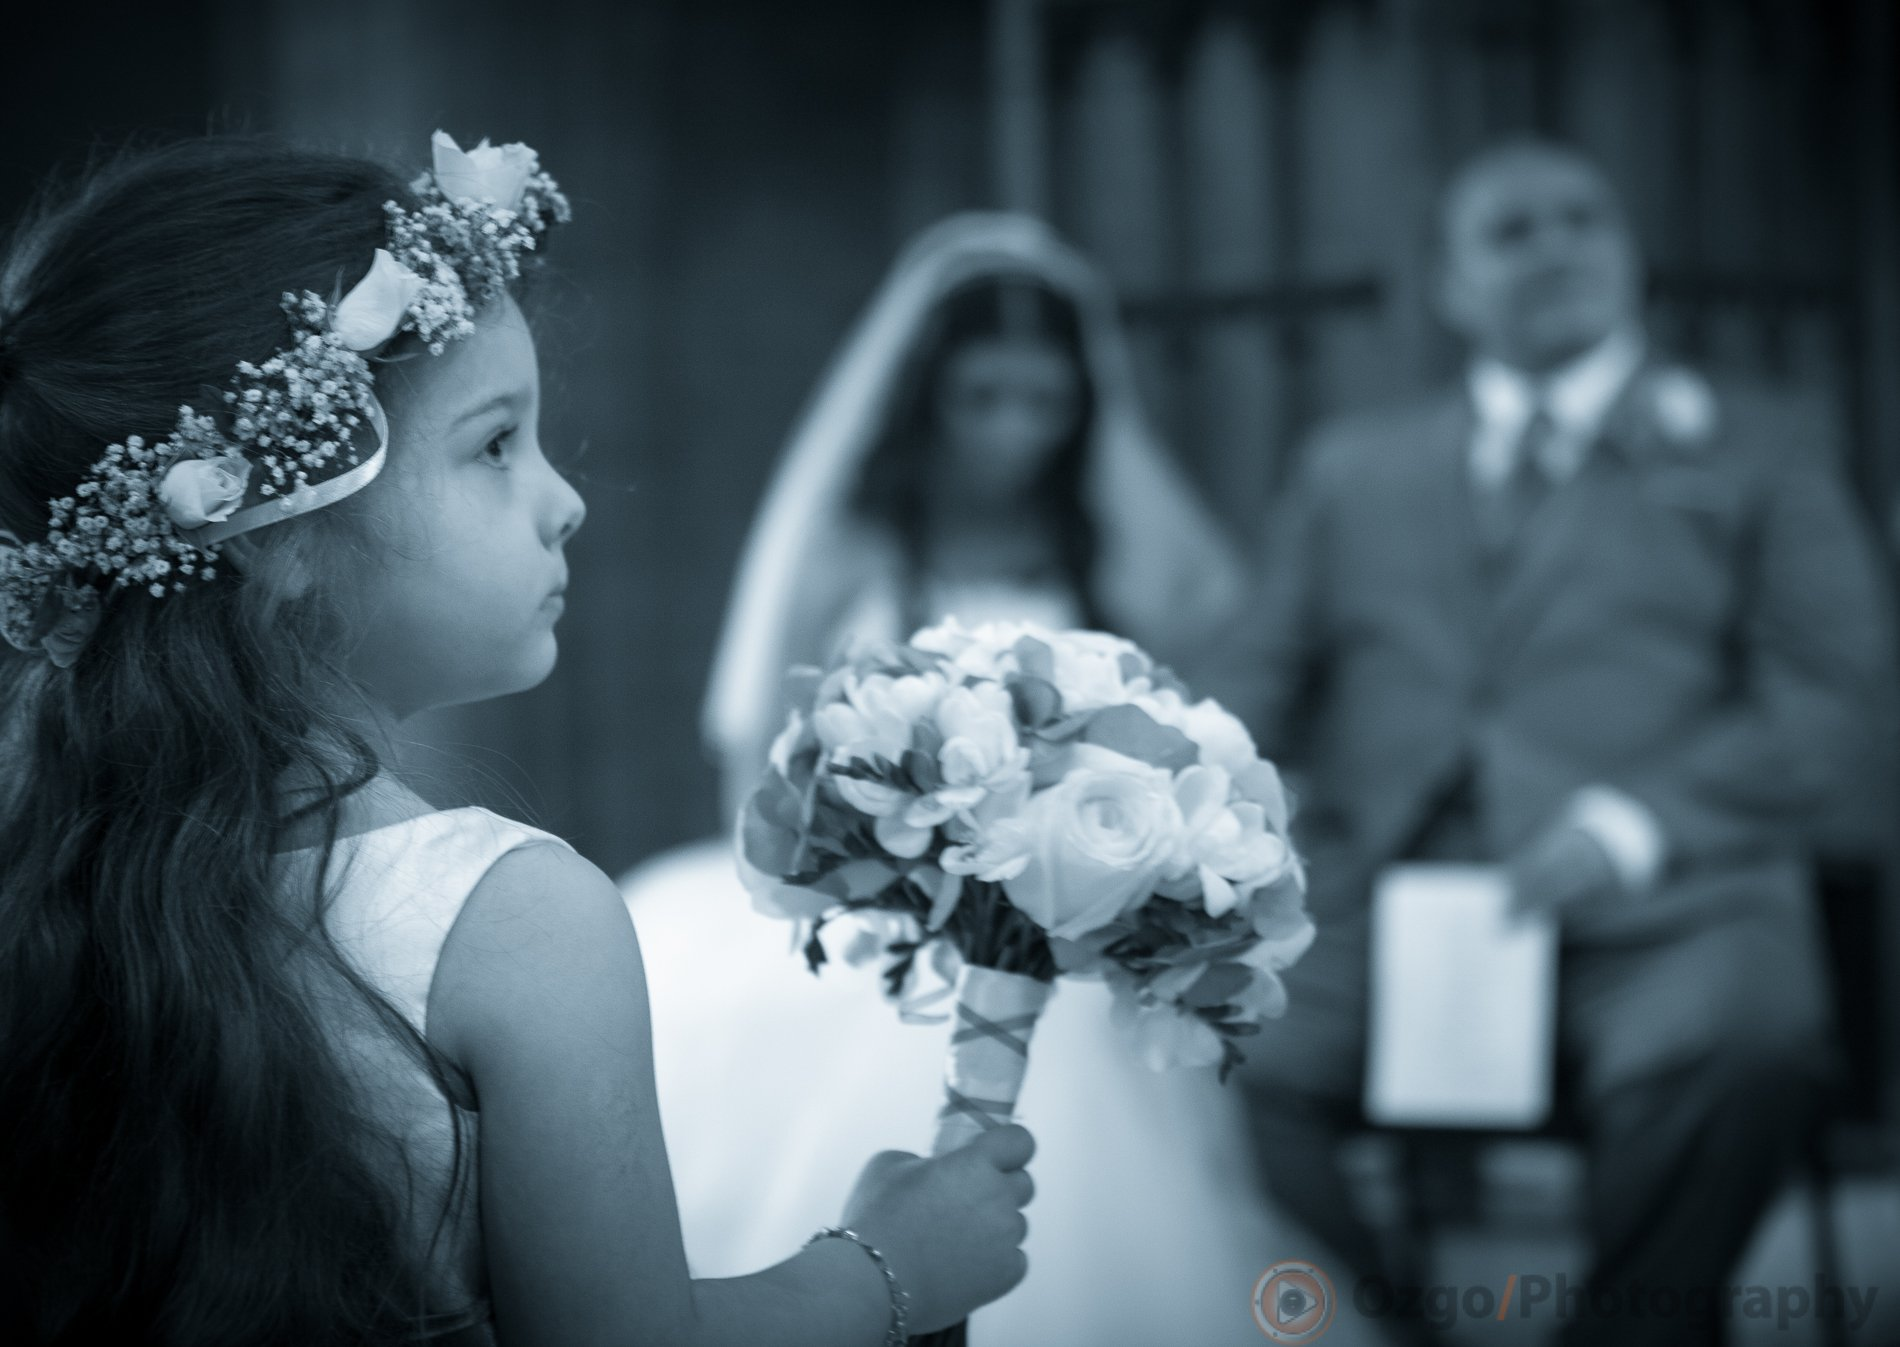 Ozgo Wedding Photography - Flower girl holding a bouquet during ceremony